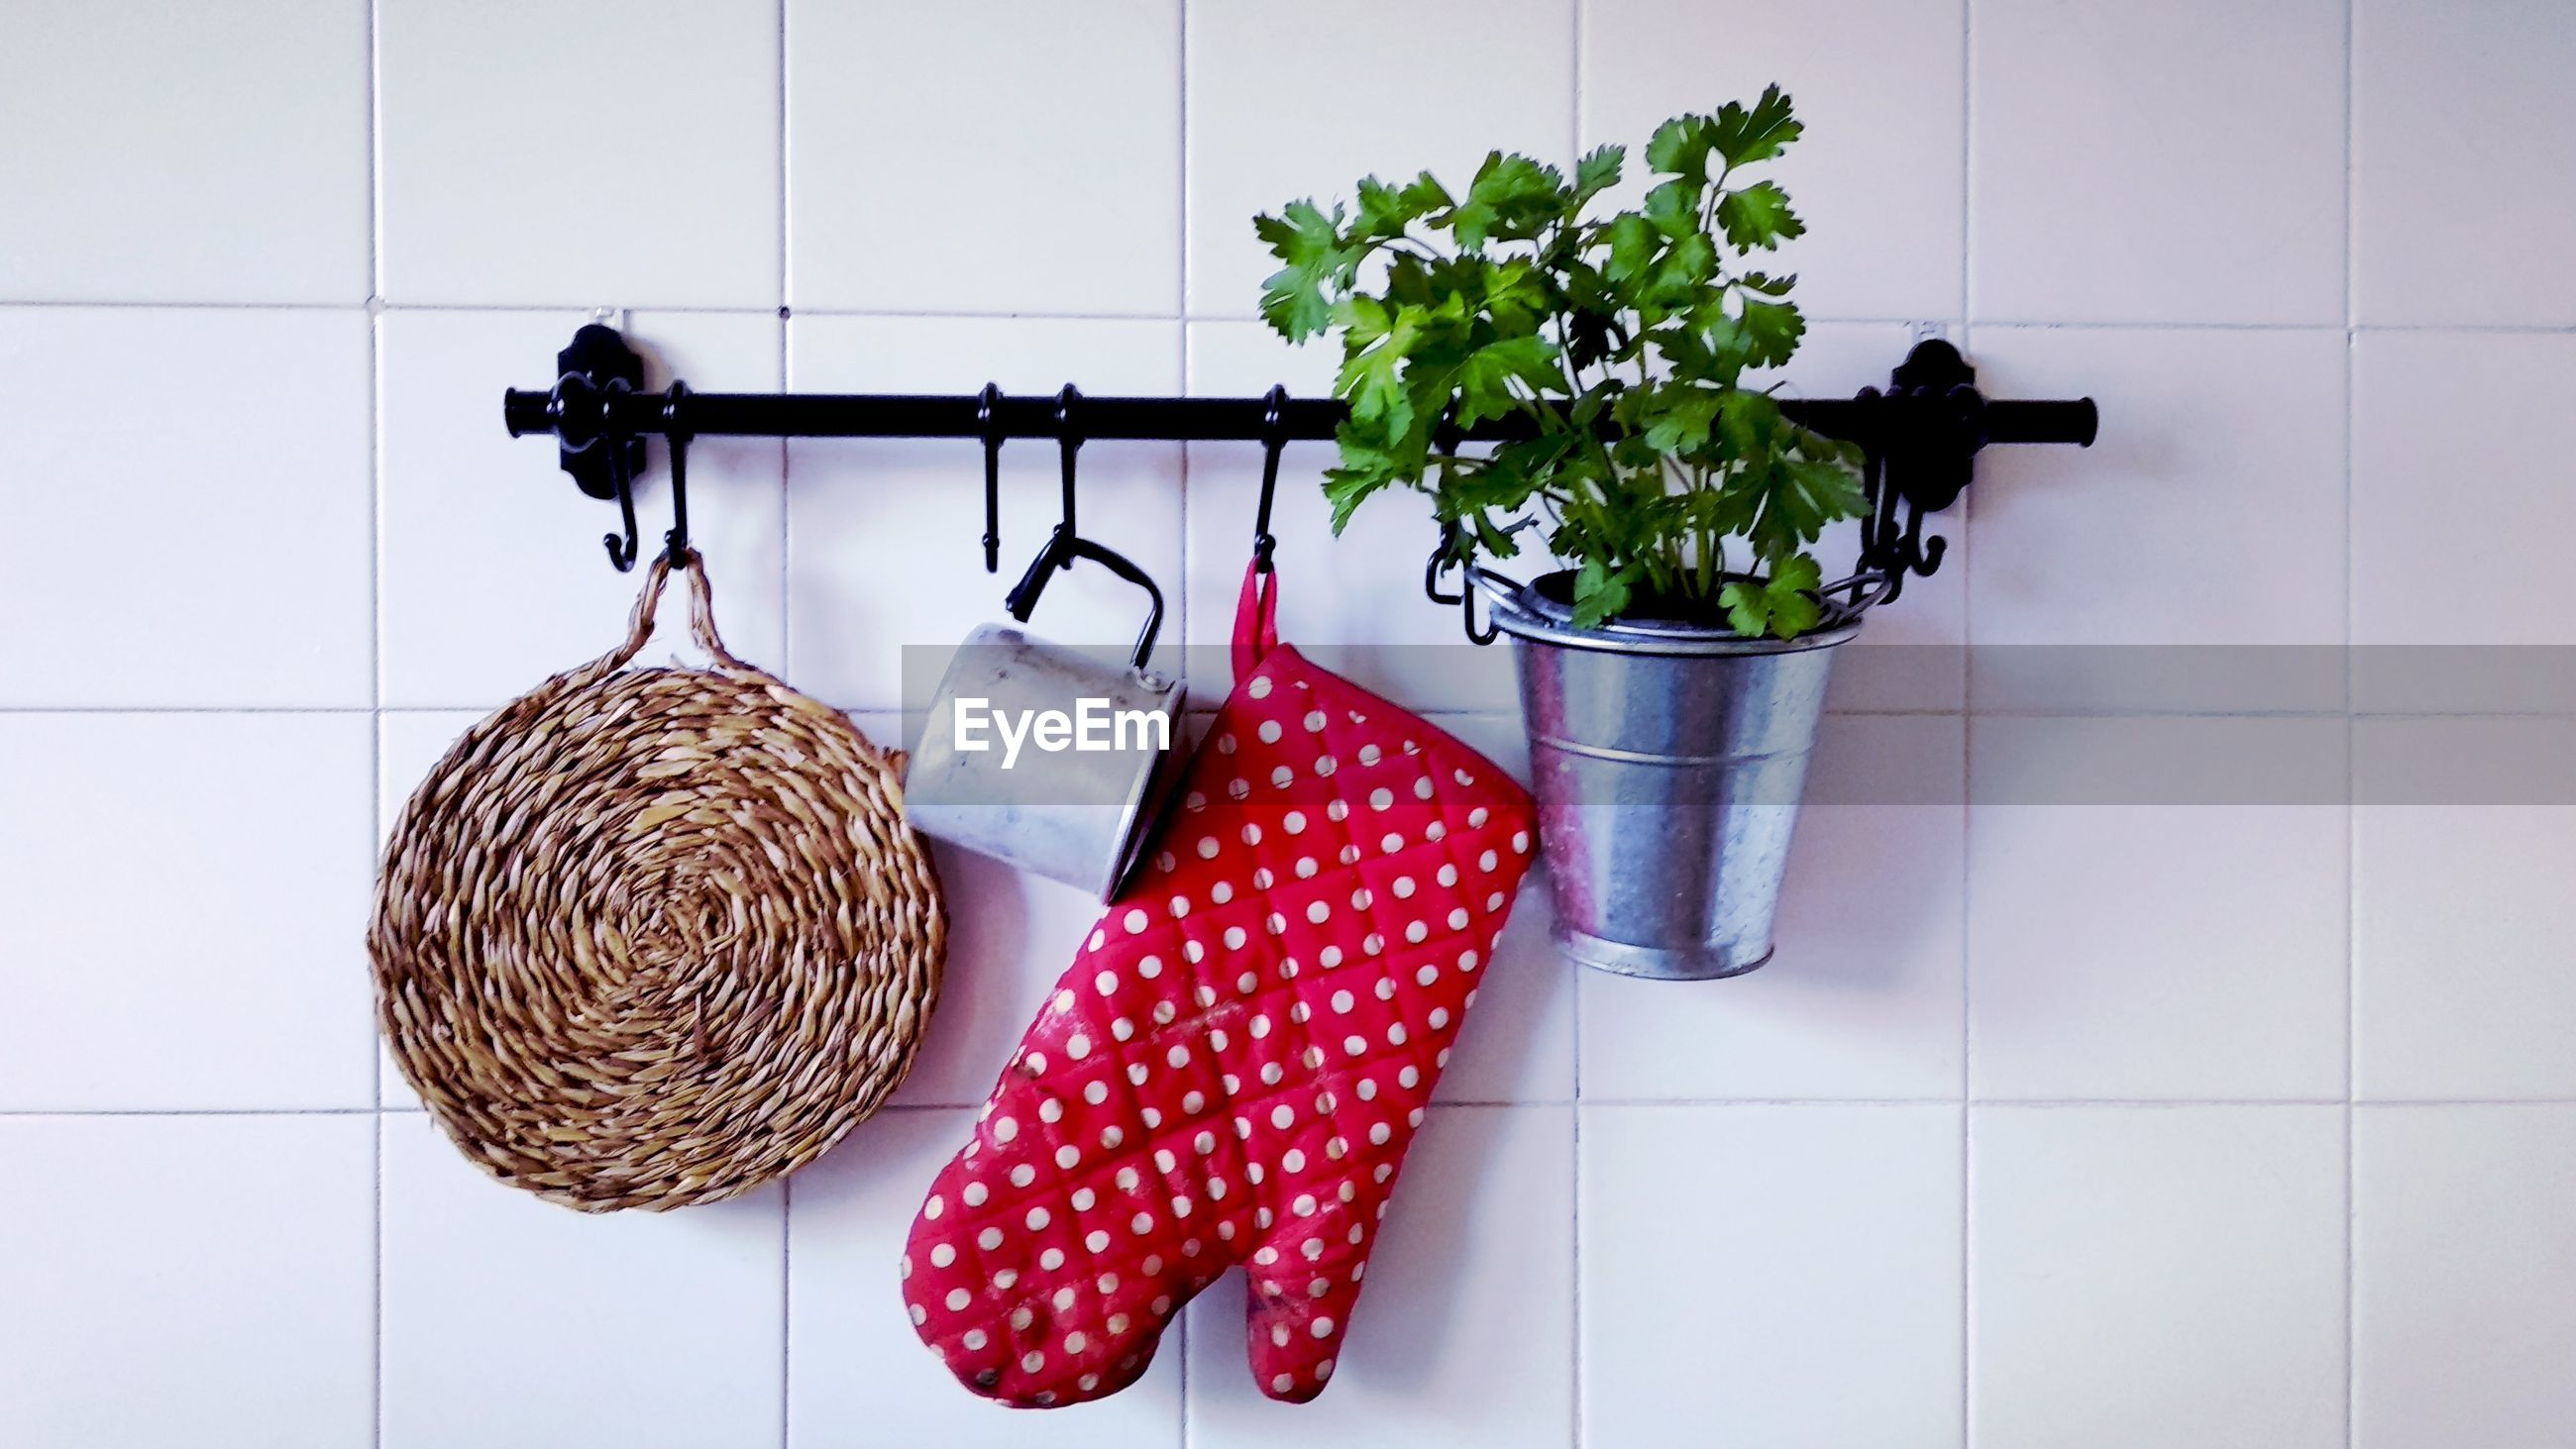 Close-up of oven mitt with potted plant and mug hanging on tiled wall